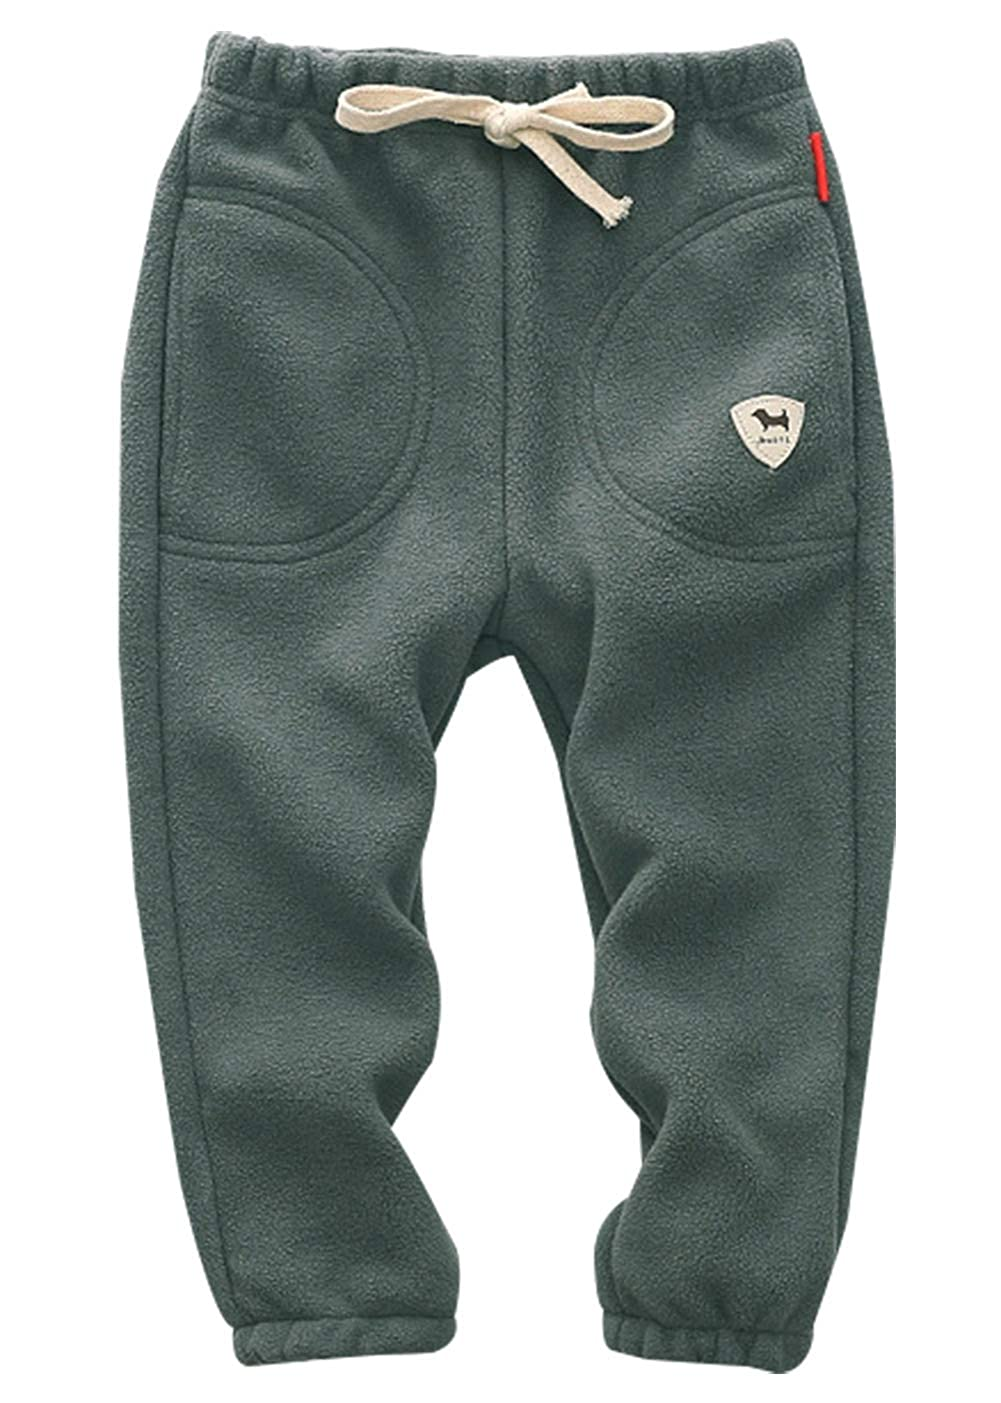 ZETA DIKES Boys Girl's Fleece Jogger Pants Elastic Waist Fit Sports Sweatpants